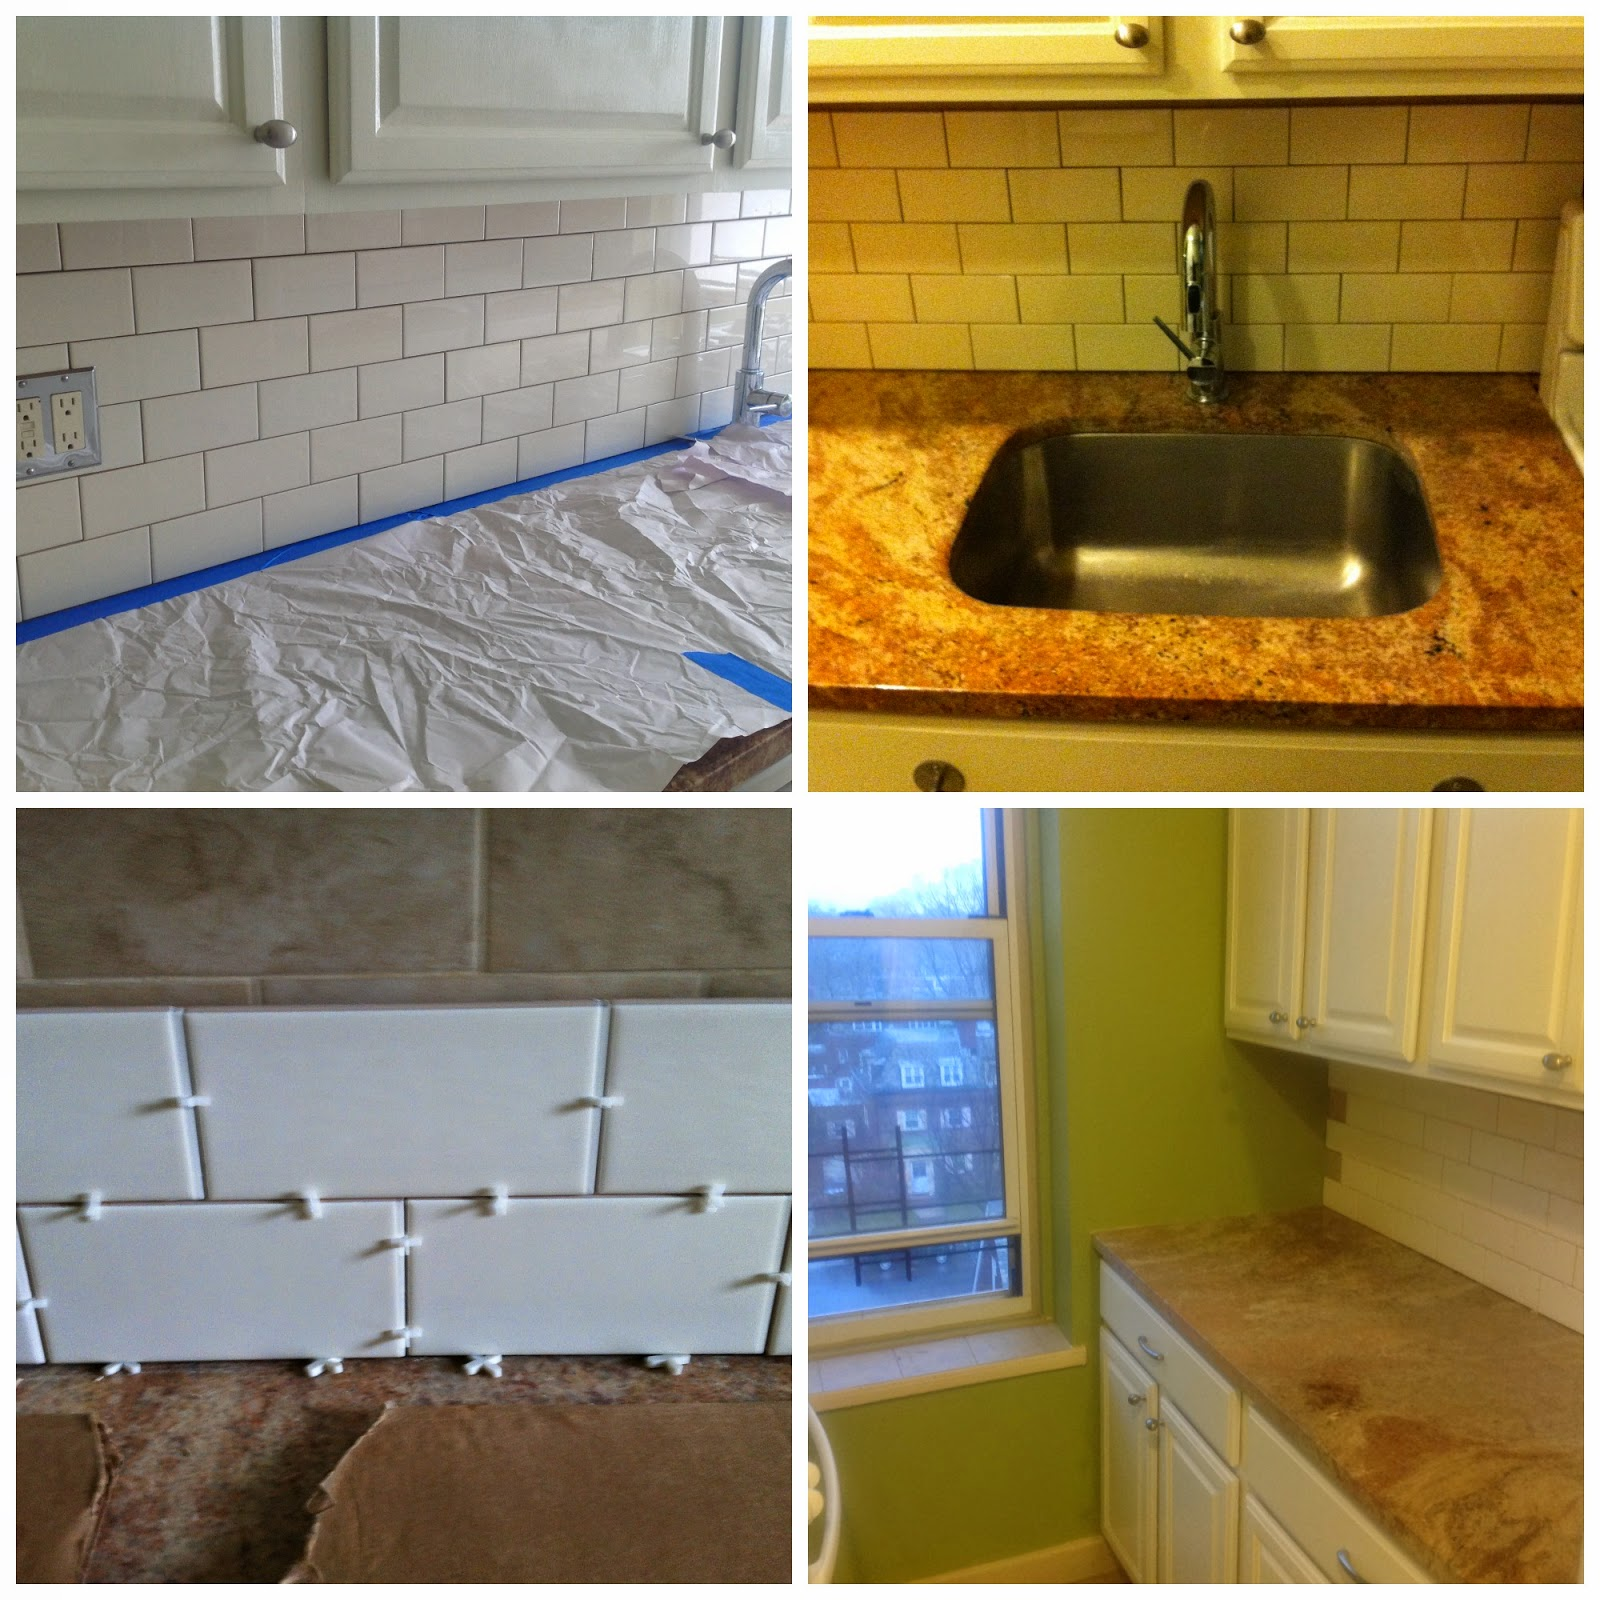 Here Are Some Progress Shots Of The Tiling You Can See